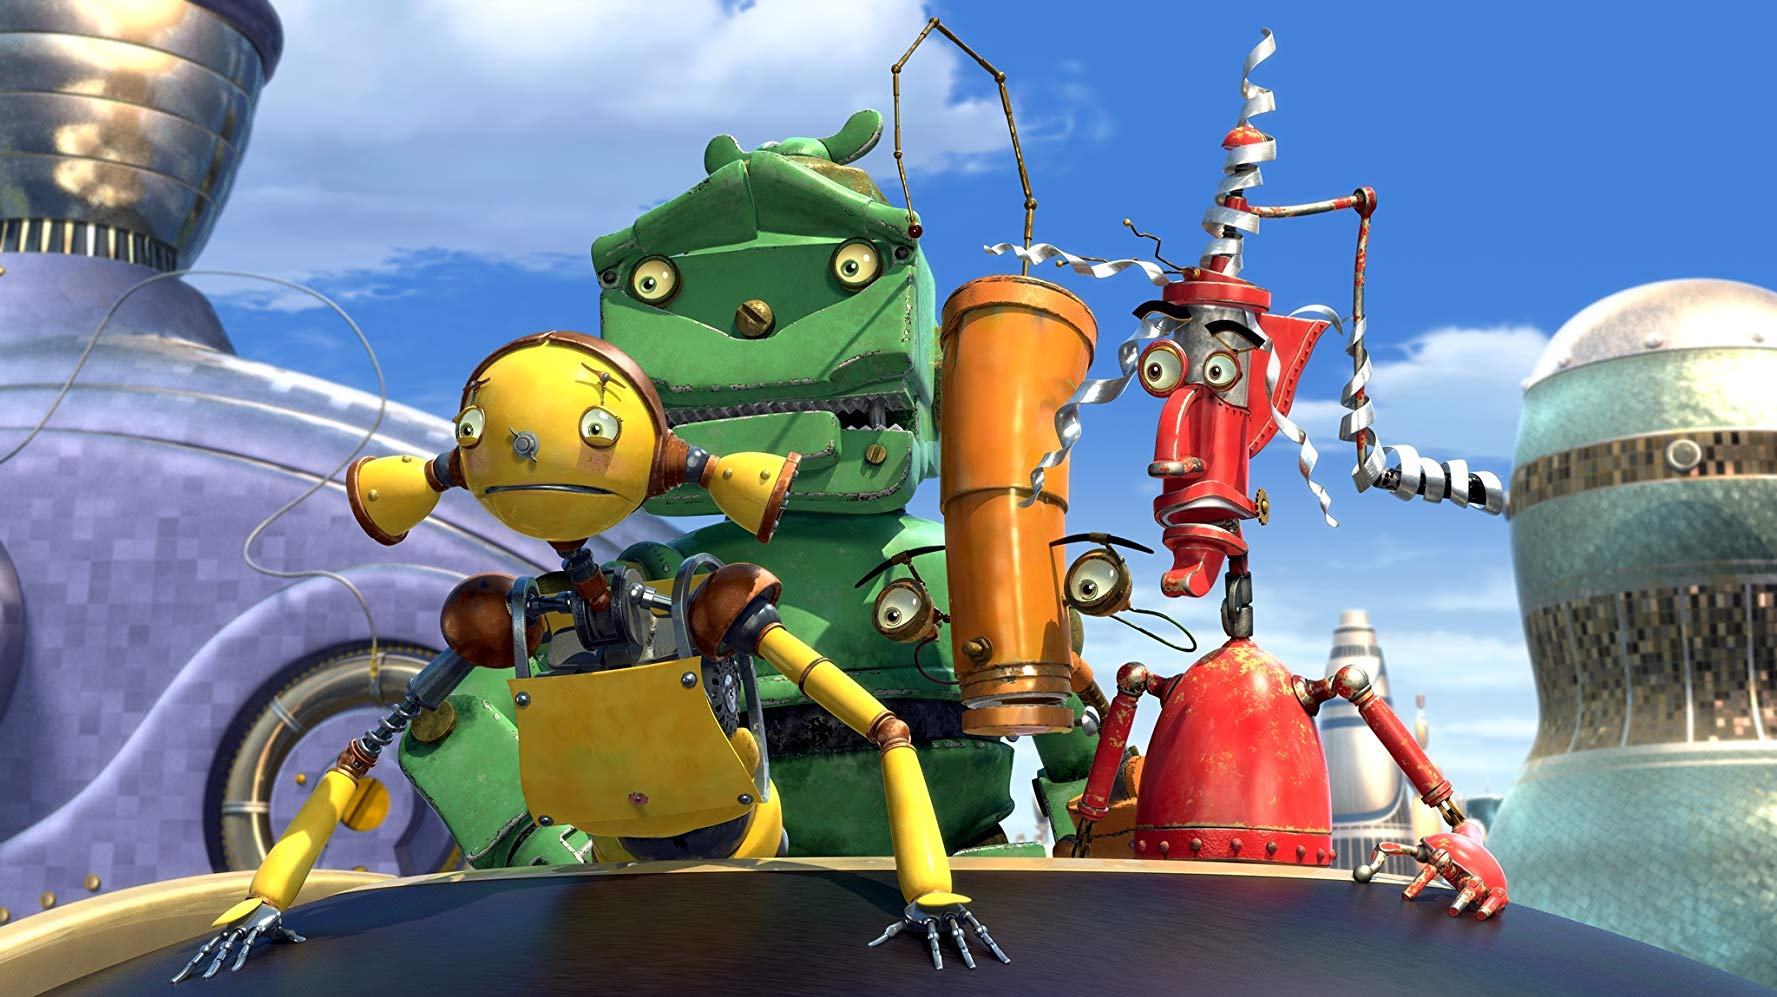 (l to r) Piper (voiced by Amanda Bynes), Lug (voiced by Harland Williams), Crank (voiced by Drew Carey) and Fender (voiced by Robin Williams) in Robots (2005)